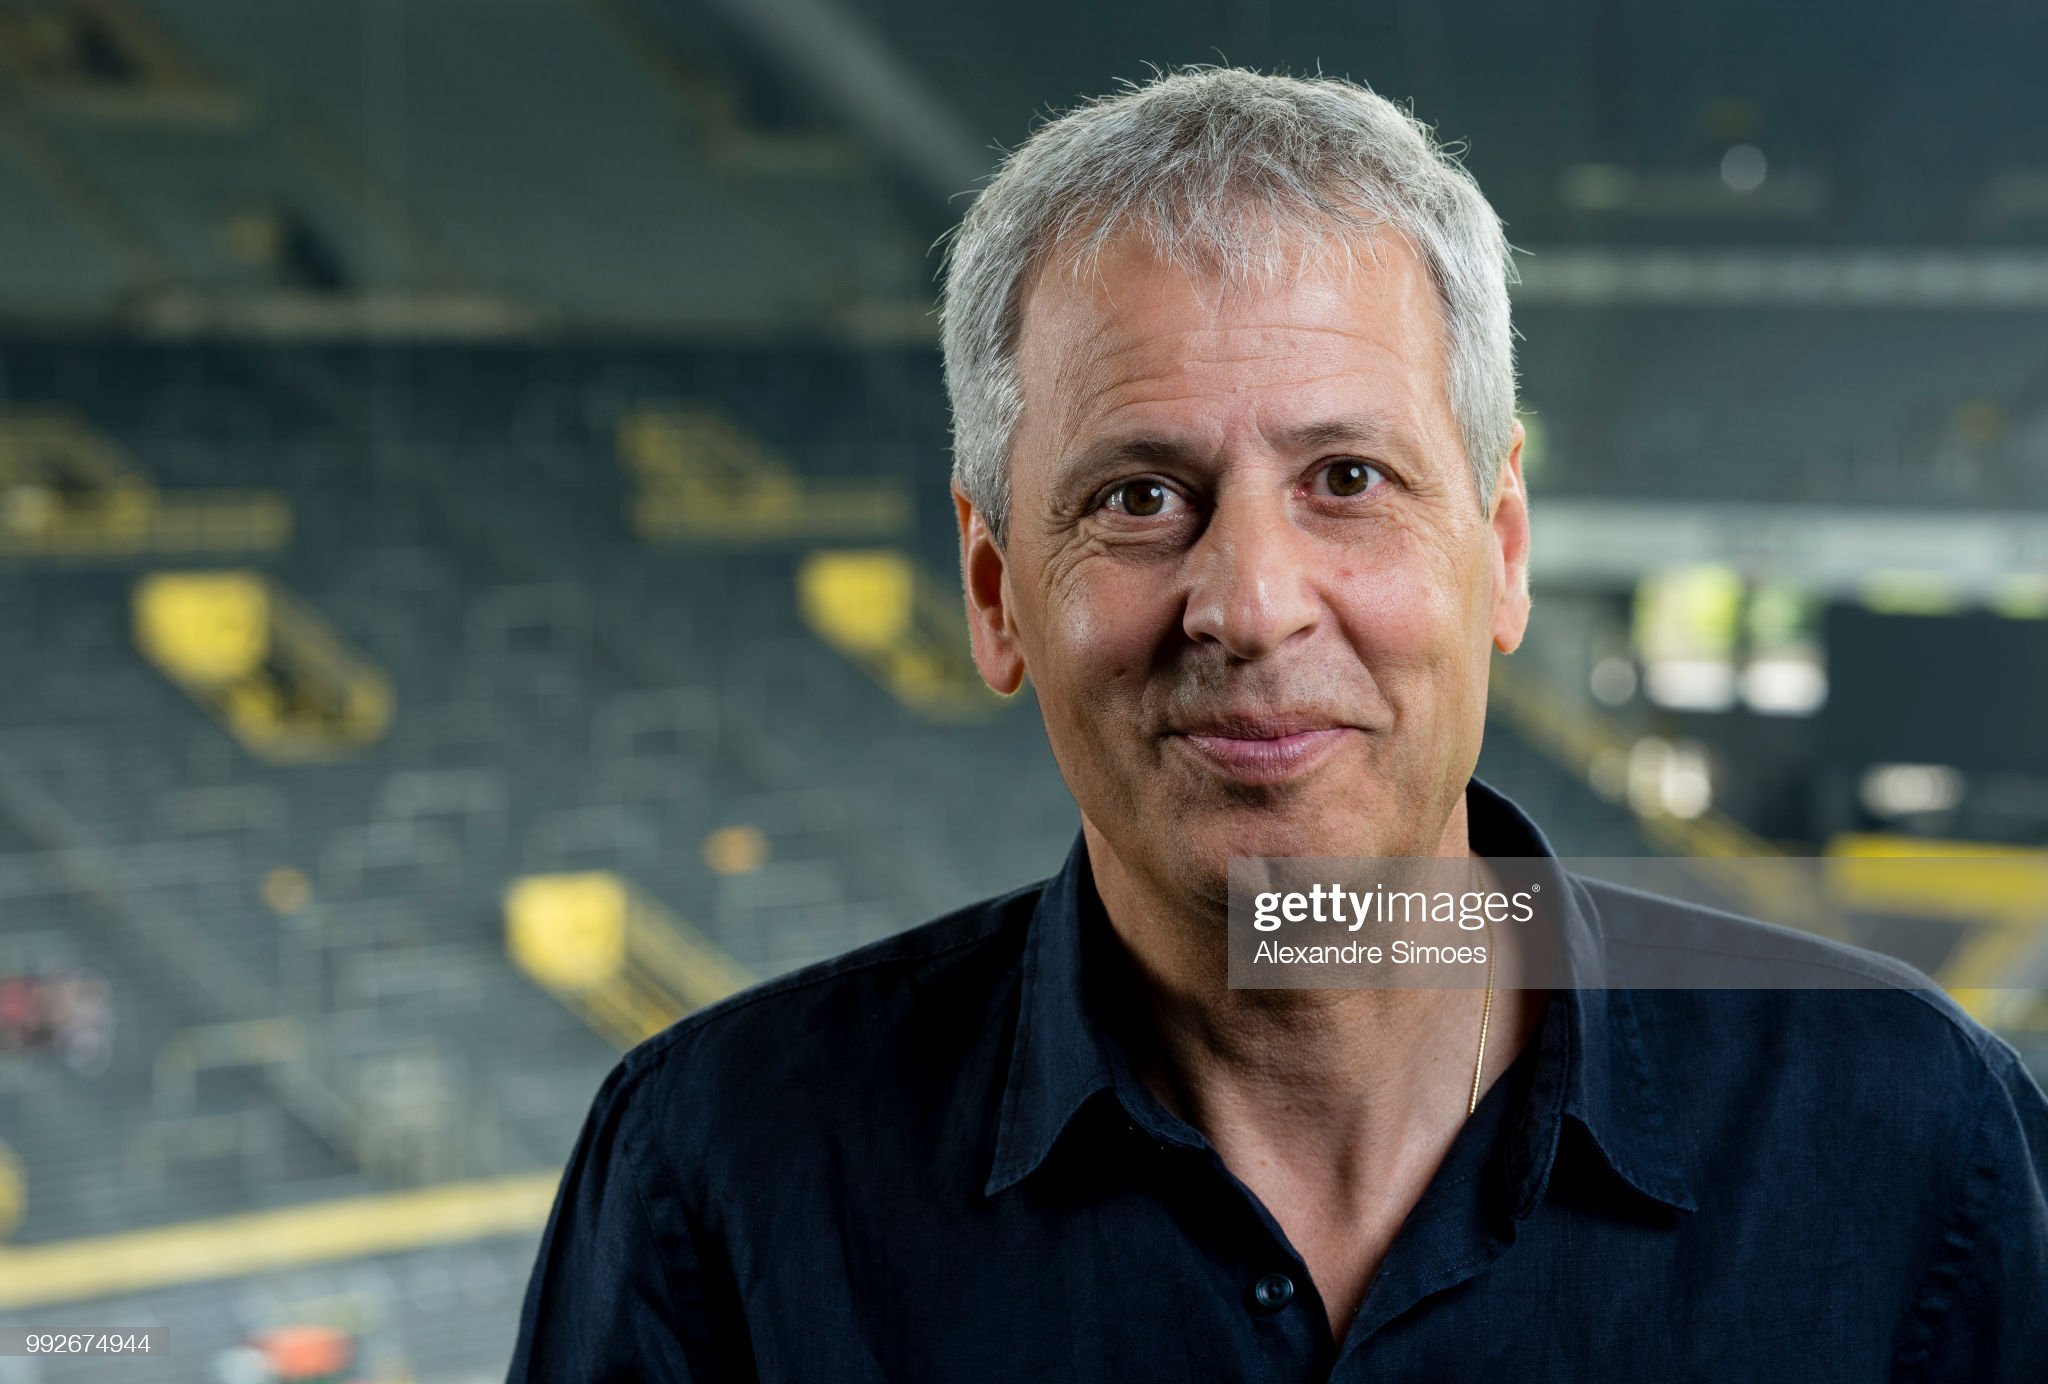 https://media.gettyimages.com/photos/borussia-dortmund-present-the-new-head-coach-lucien-favre-at-dortmund-picture-id992674944?s=2048x2048